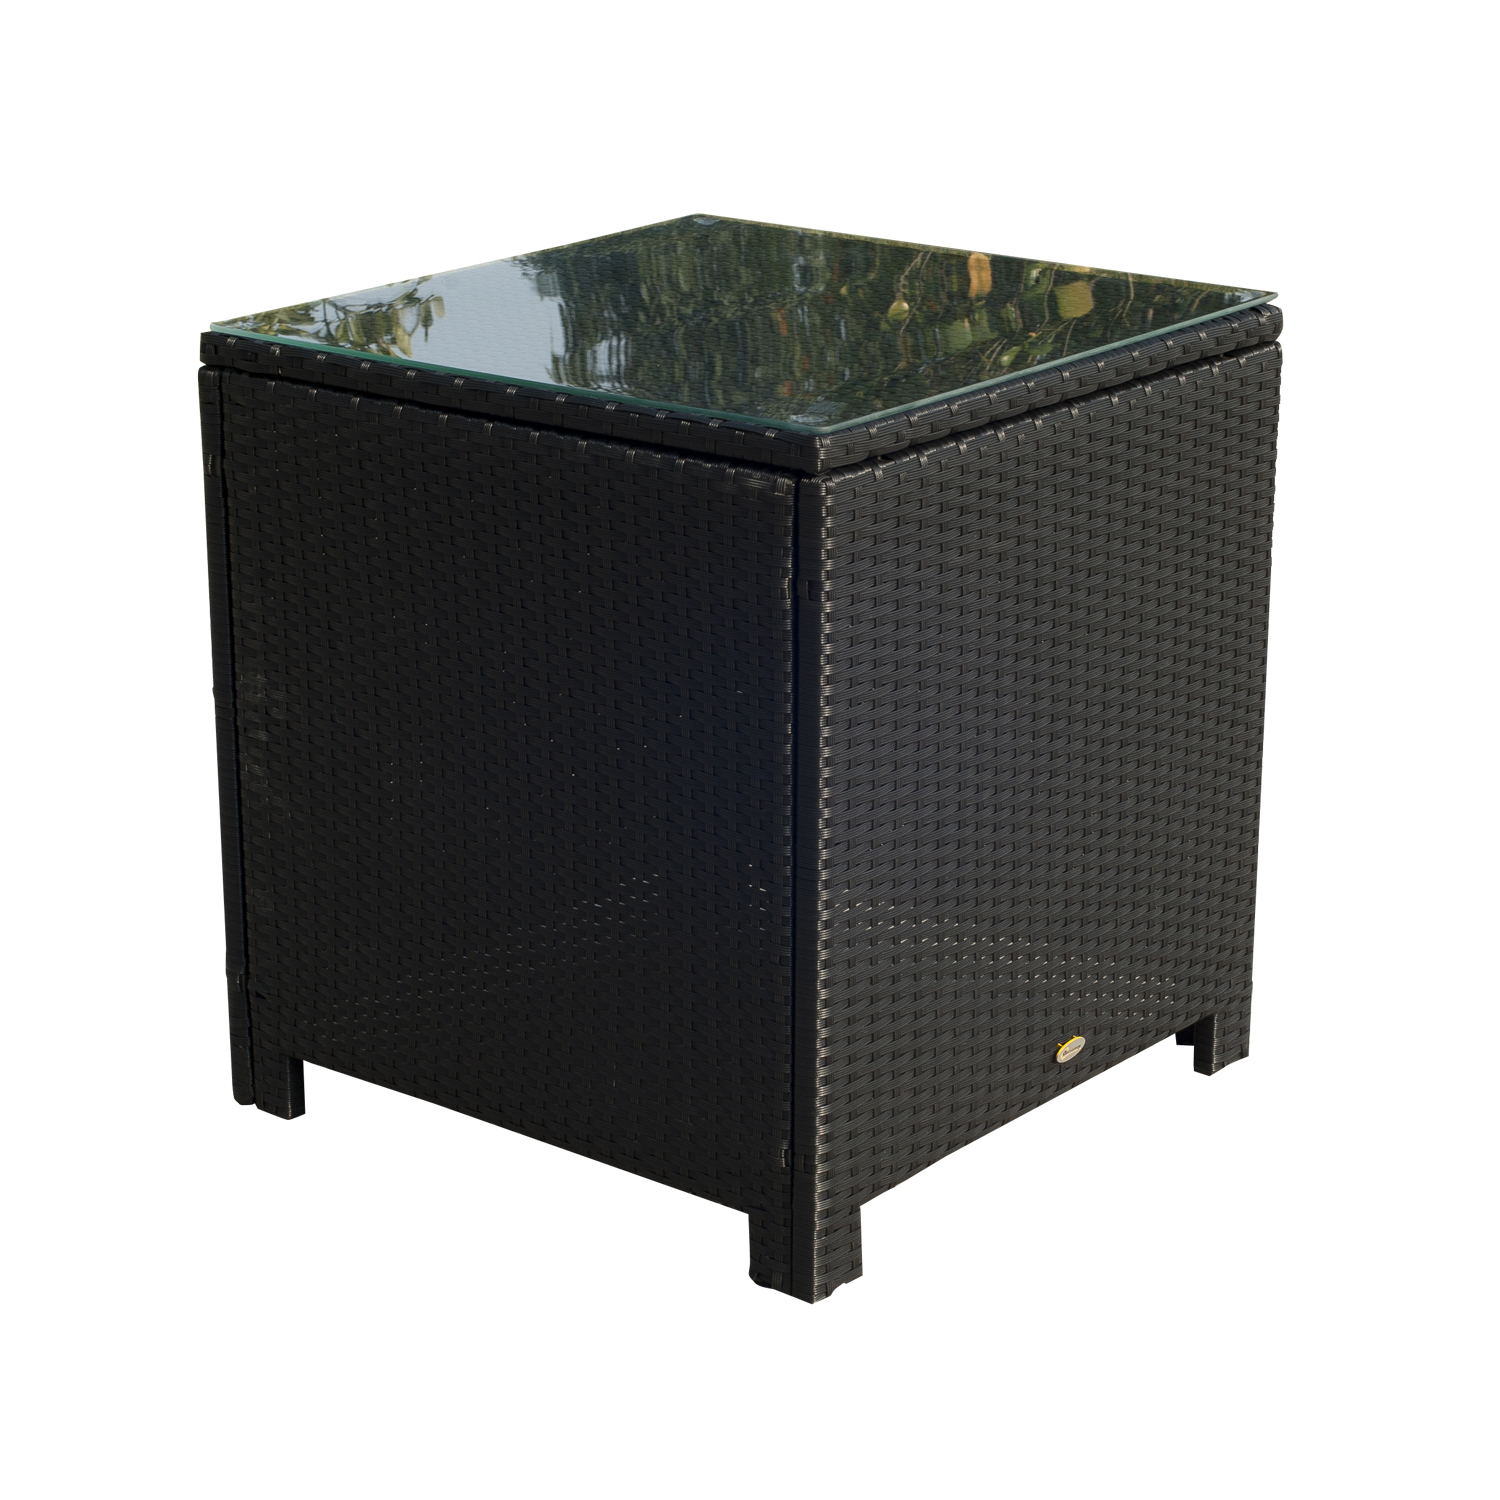 Image of CAD $129.99 Outsunny Rattan Wicker Side Coffee Table with Glass Top Outdoor Patio Furniture Black / Canada 24144523799